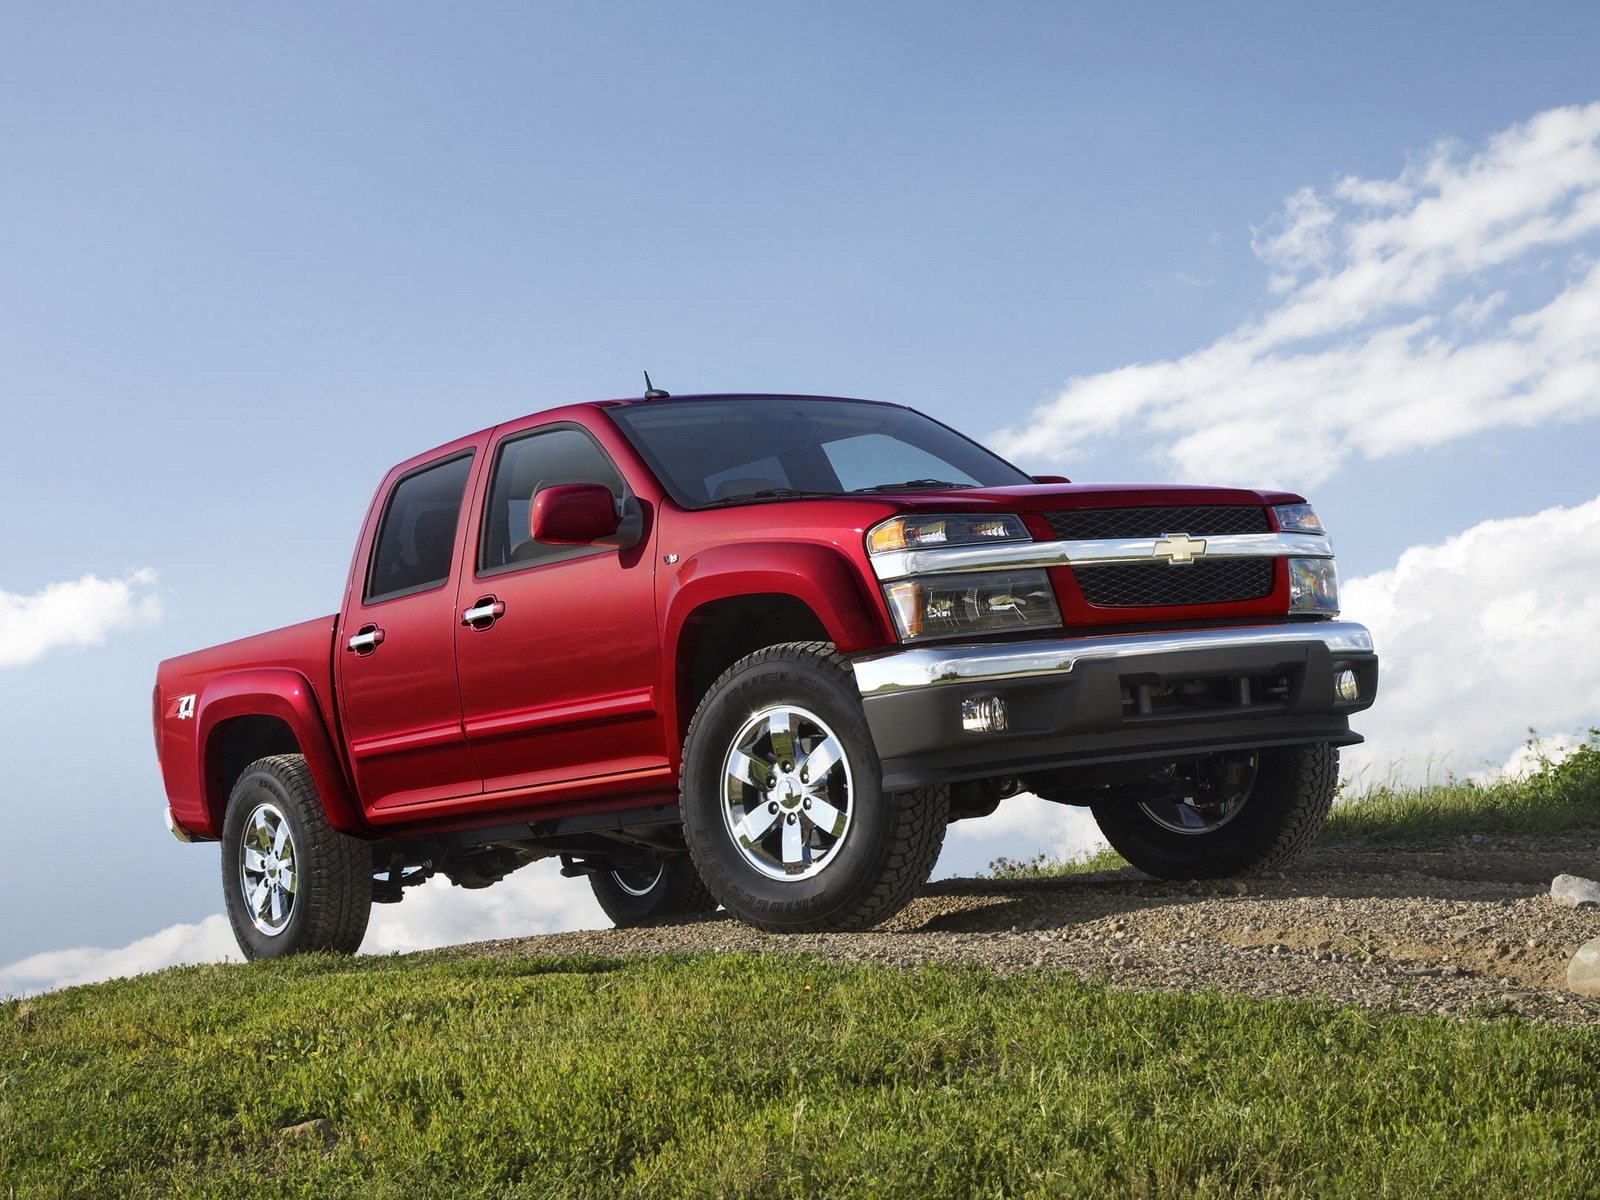 Red Chevrolet Colorado Wallpaper Photos